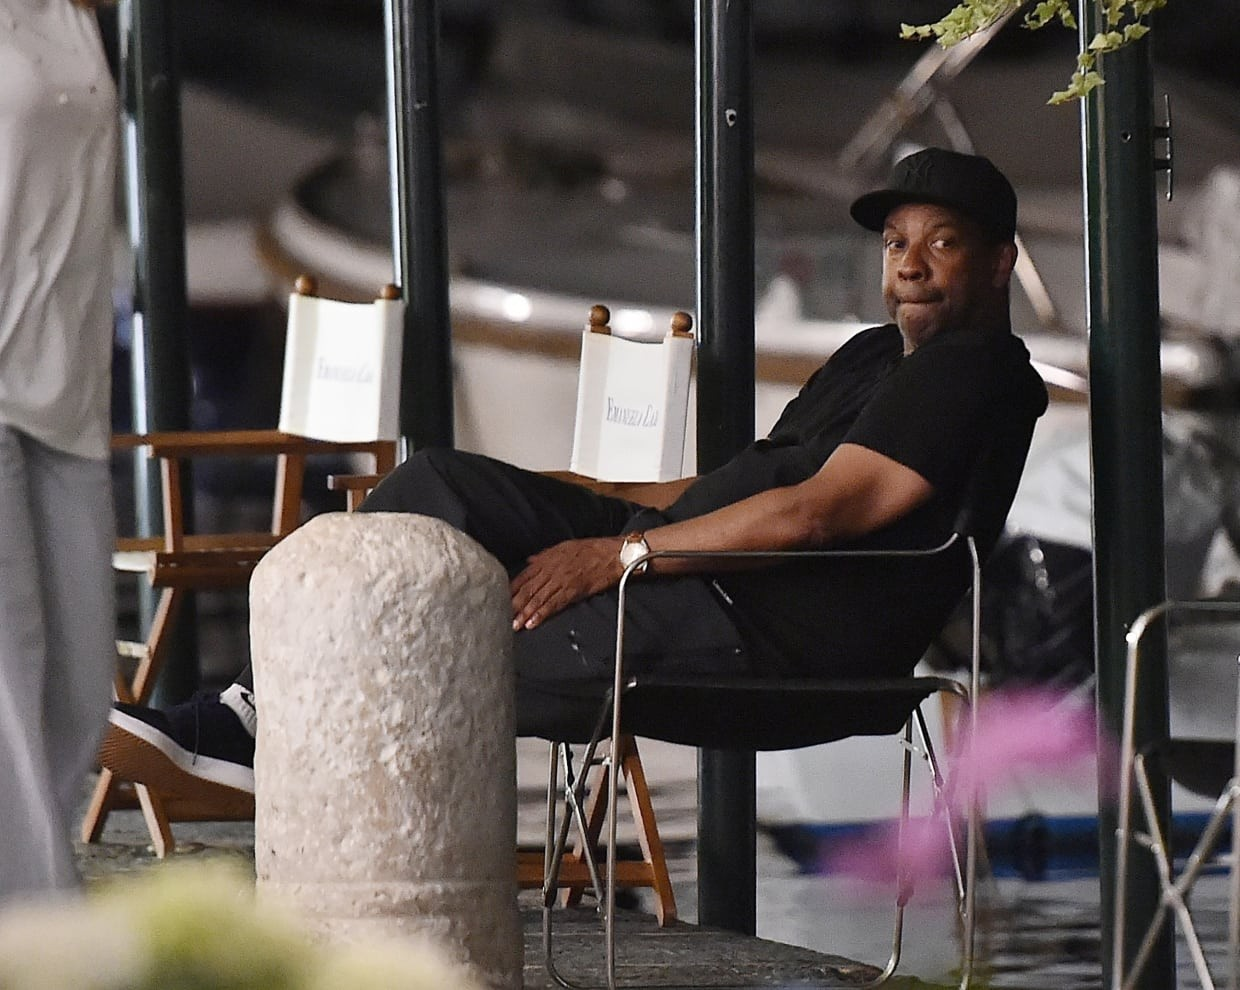 Denzel Washington photographed with his wife and daughter on holiday in Portofino